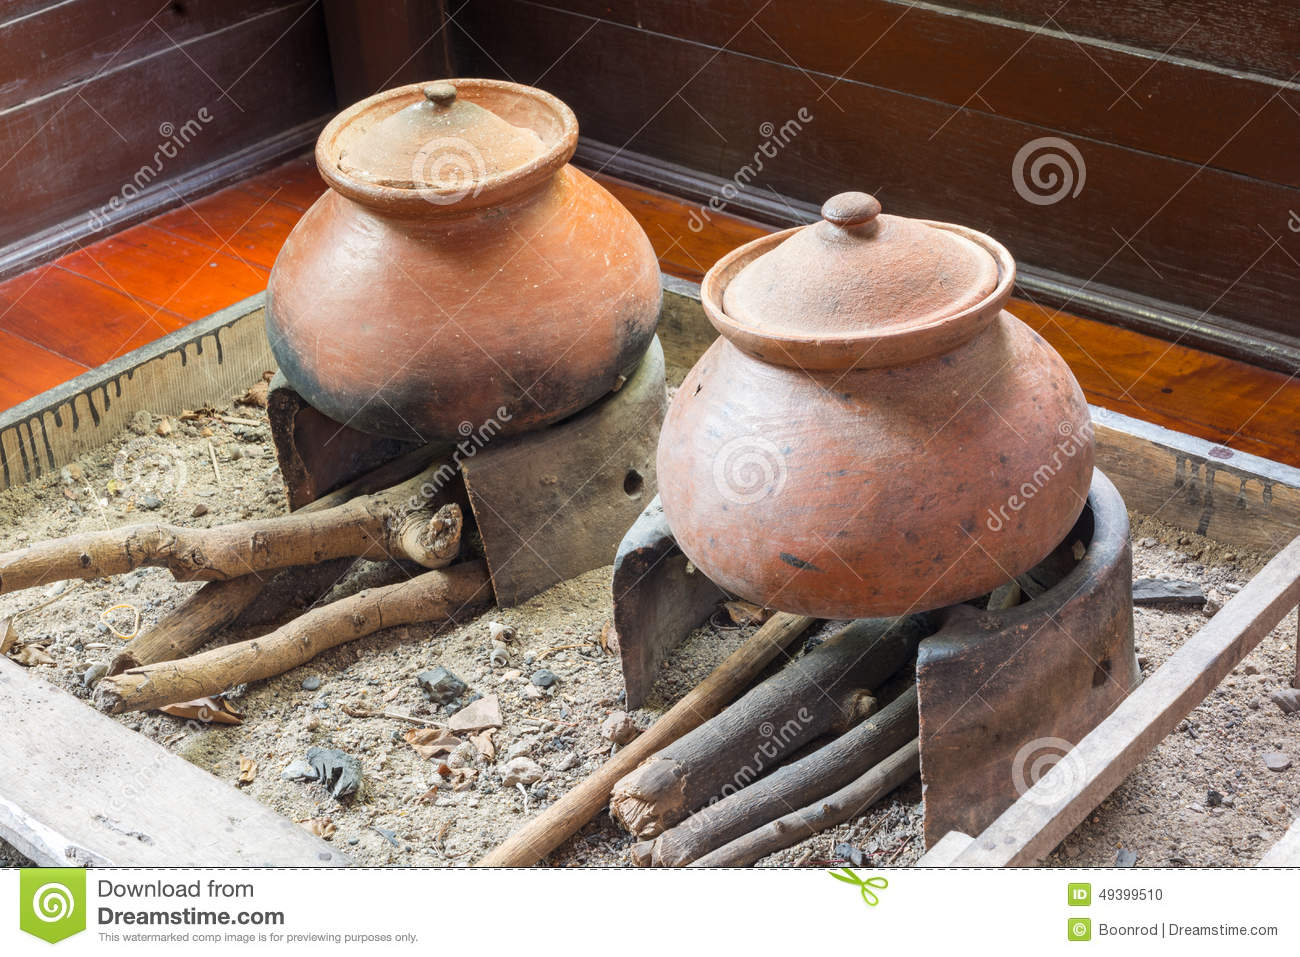 Ancient Rice Cooker Stock Photo - Image: 49399510